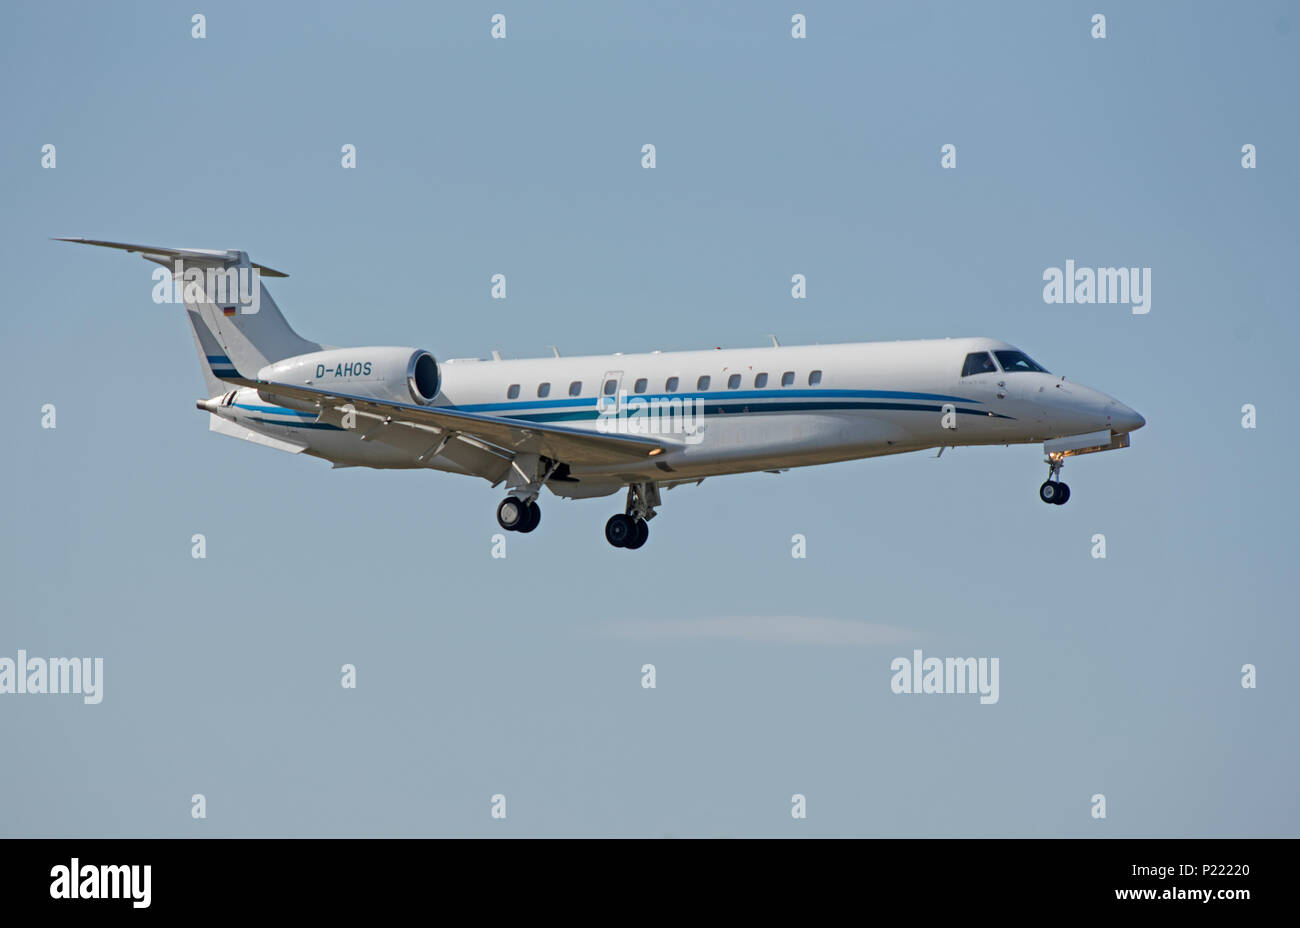 D-AHOS Air Hamburg Embraer-135BJ Legacy 650 on approach to Inverness Dalcross Airport. - Stock Image